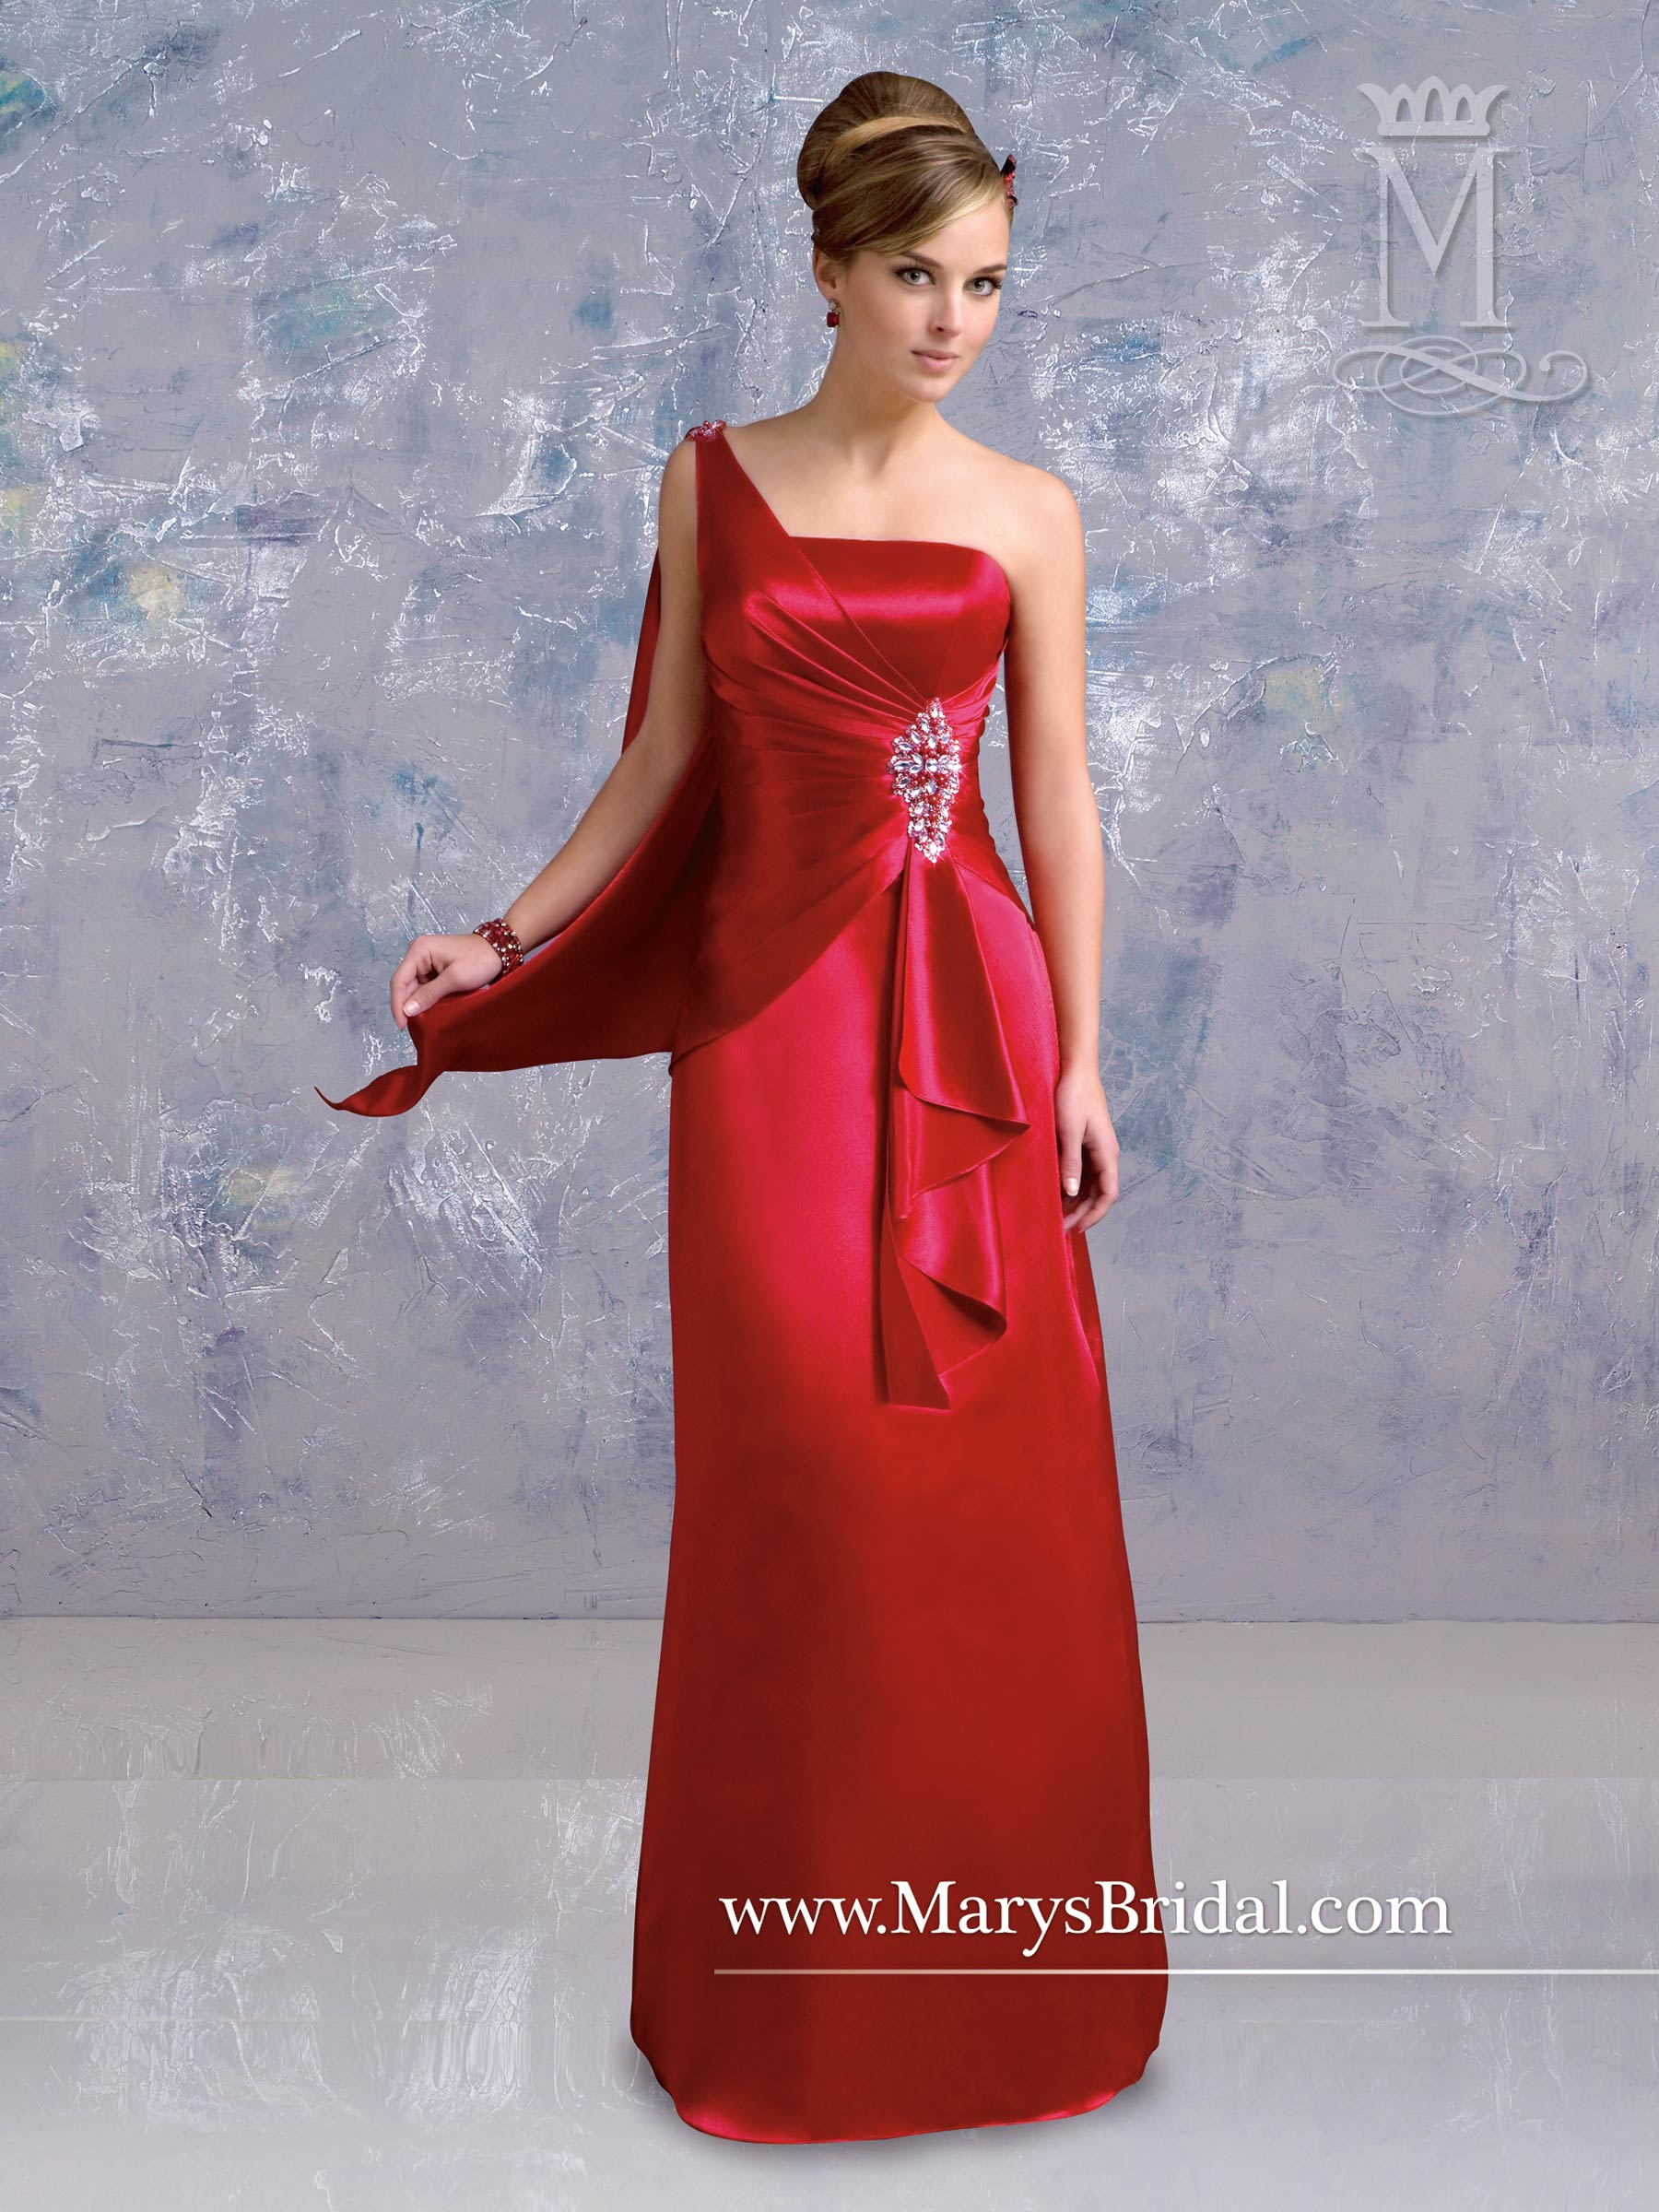 Amalia bridesmaid dresses style m1305 in available in 25 colors amalia bridesmaid dresses amalia style m1305 ombrellifo Gallery